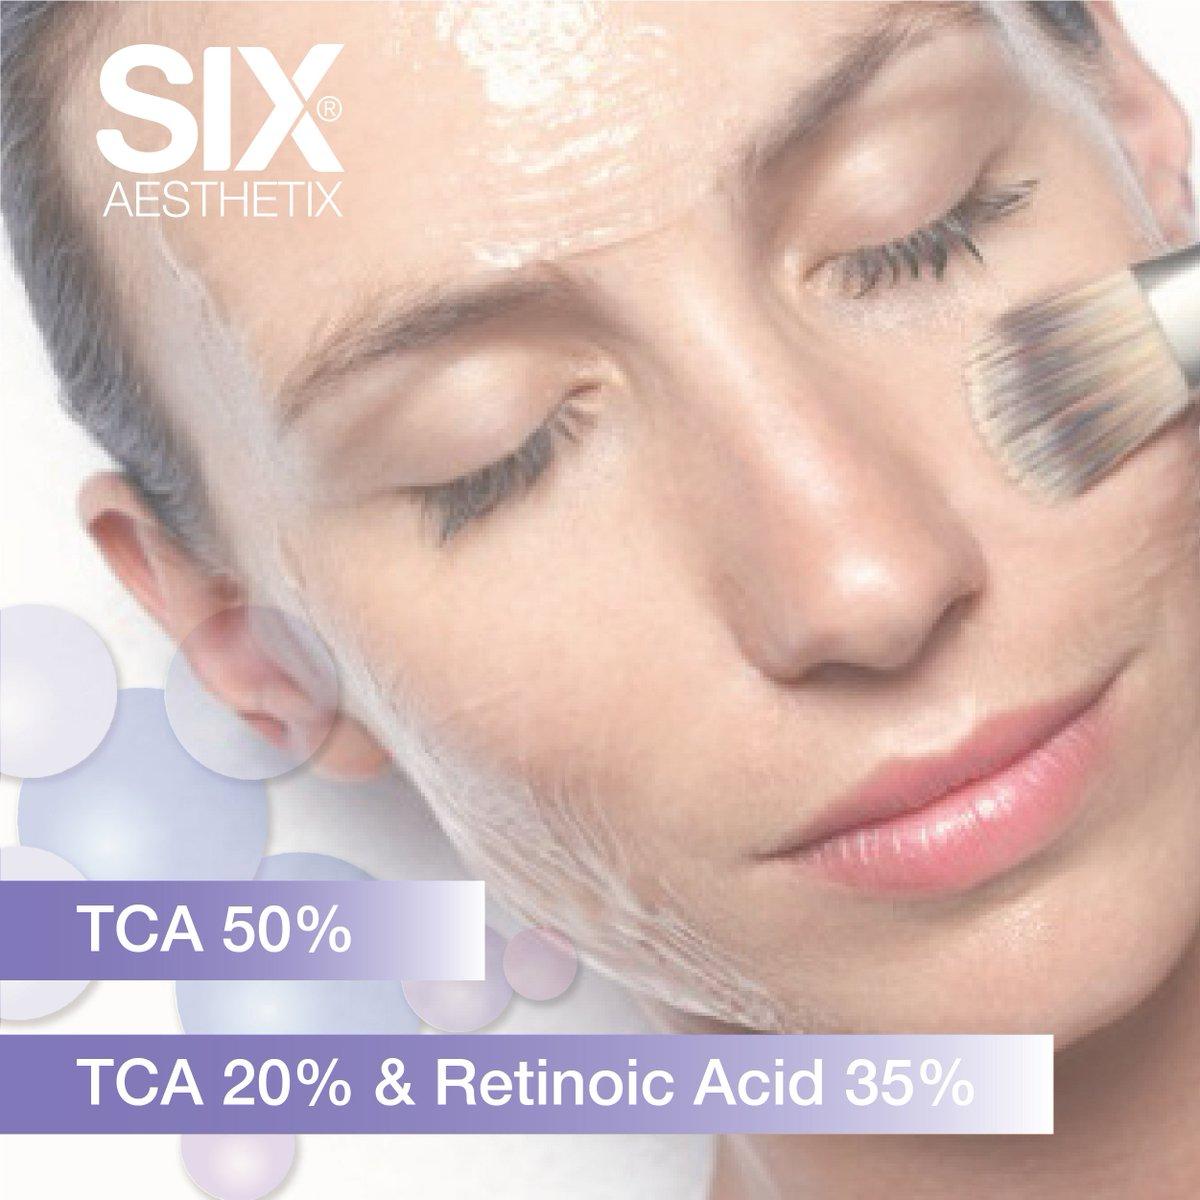 SixSkincare photo